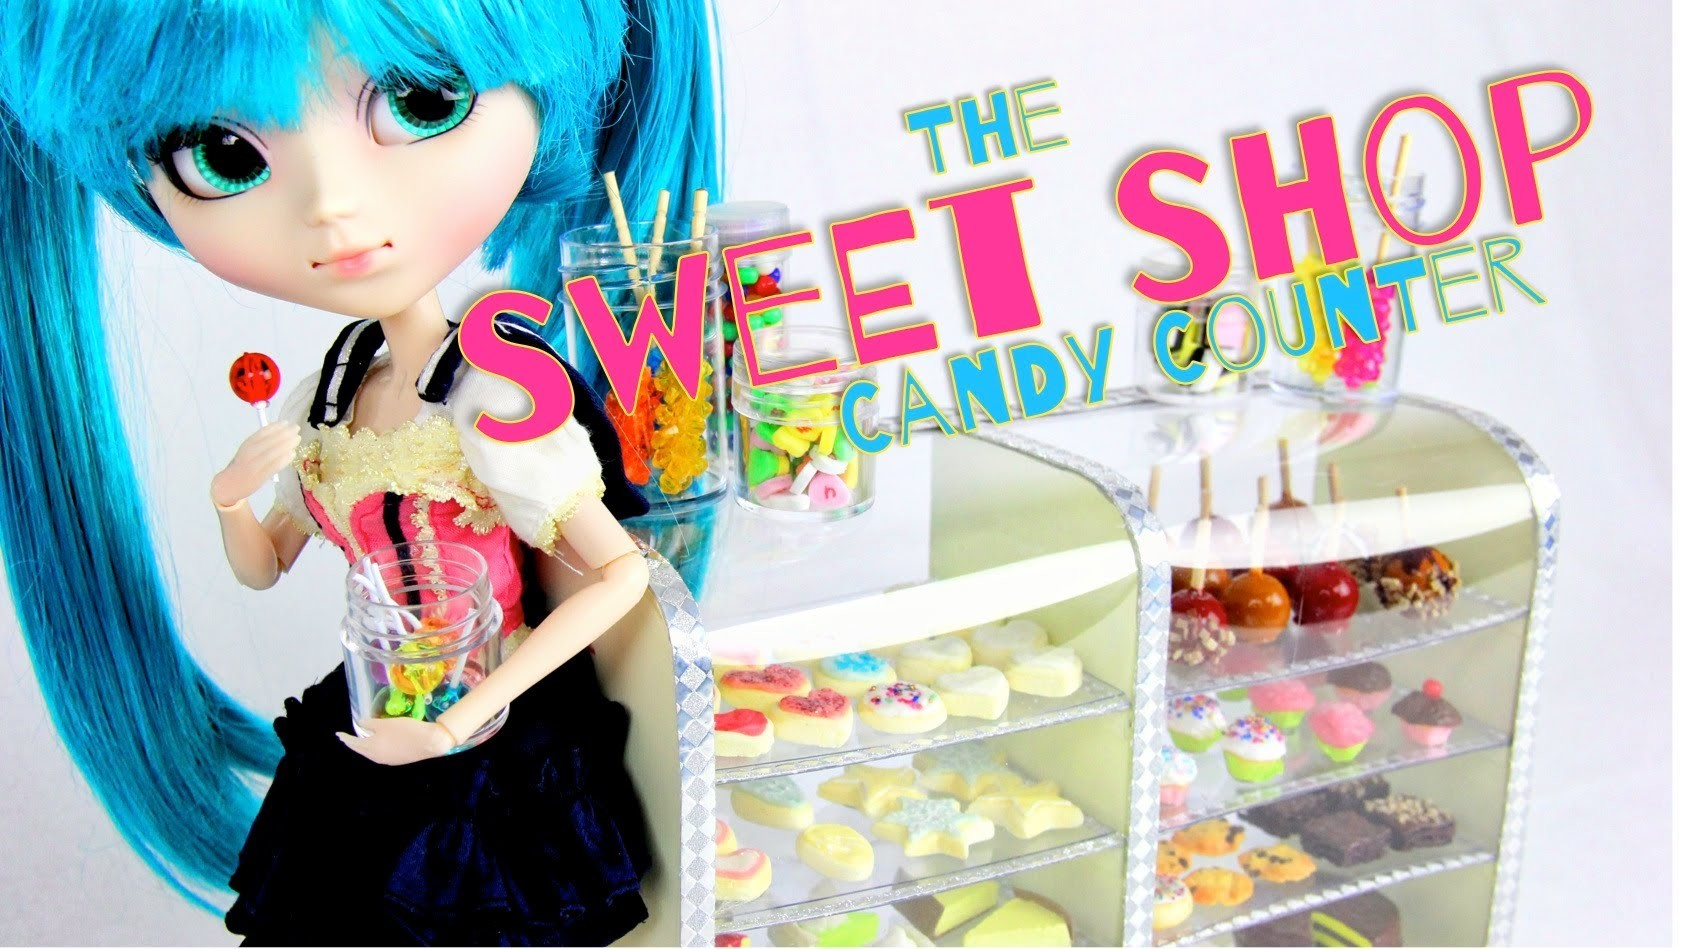 How to Make a Doll Sweet Shop Candy Counter - Doll Crafts